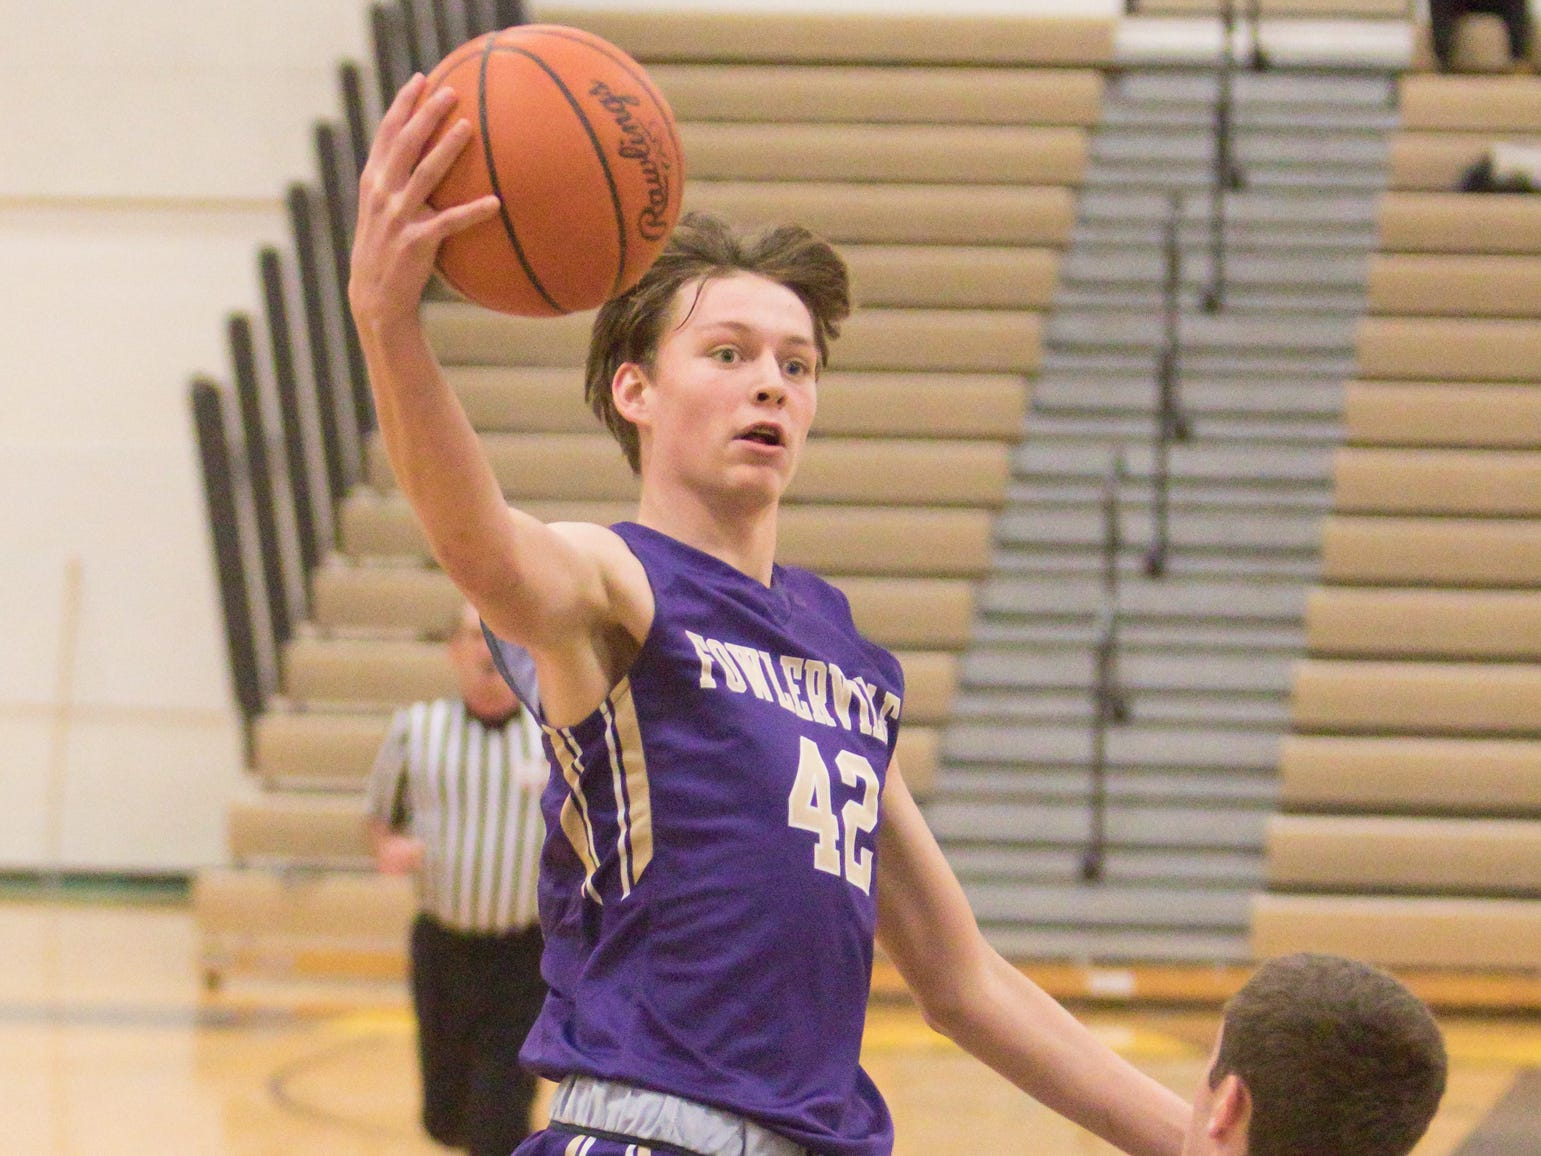 Fowlerville's Billy Hutchins shoots, getting fouled while making the shot in the third quarter of the game against Dexter Friday, Dec. 28, 2018.